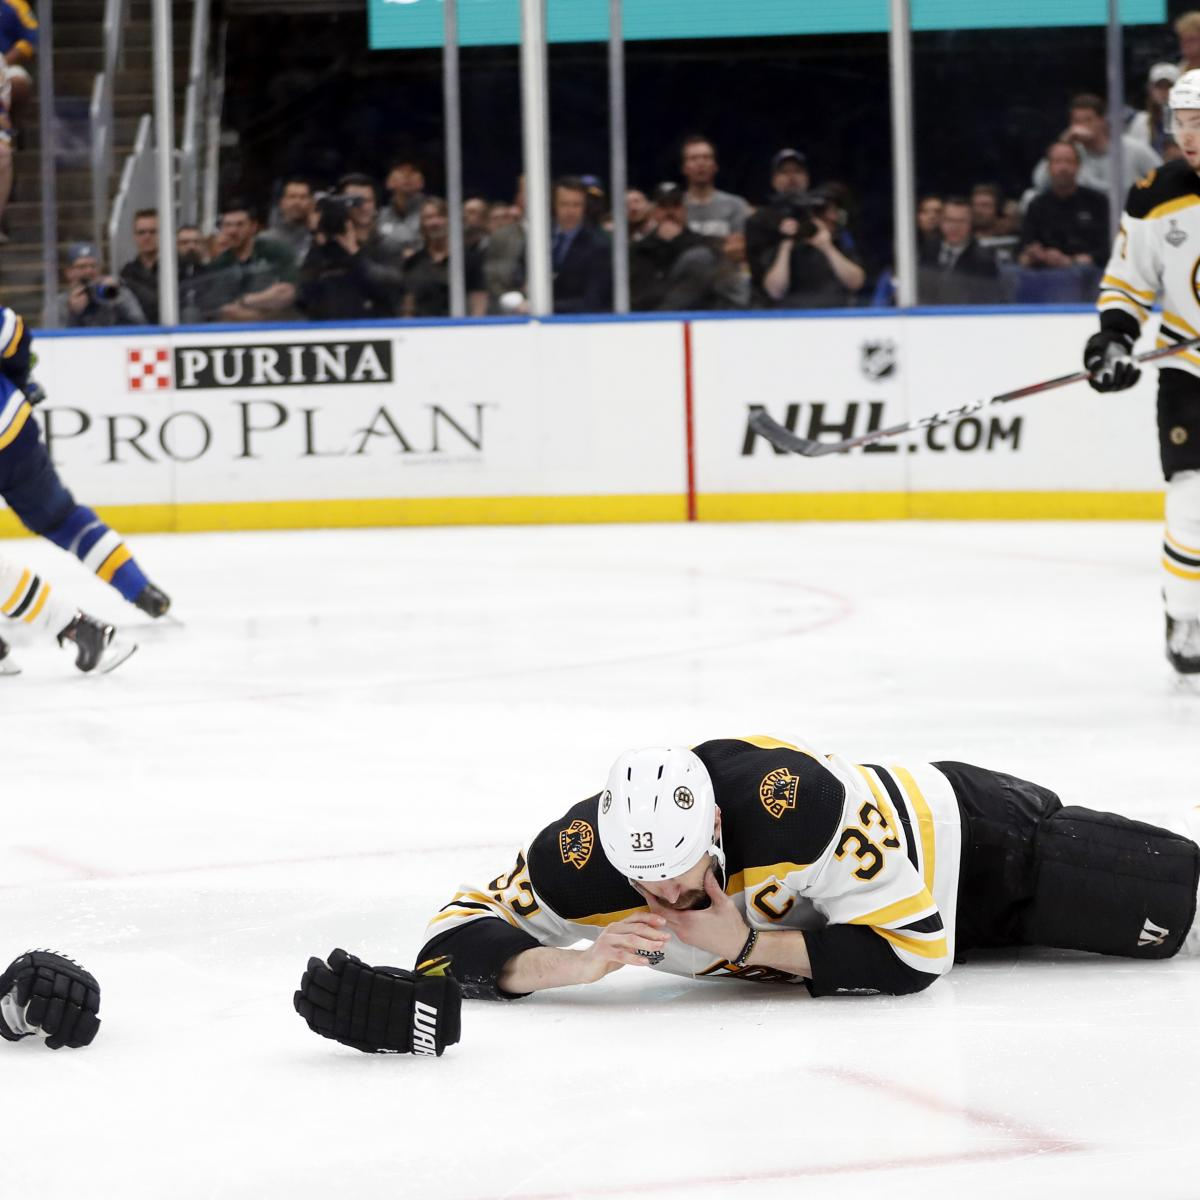 Report: Bruins' Zdeno Chara Diagnosed With Broken Jaw